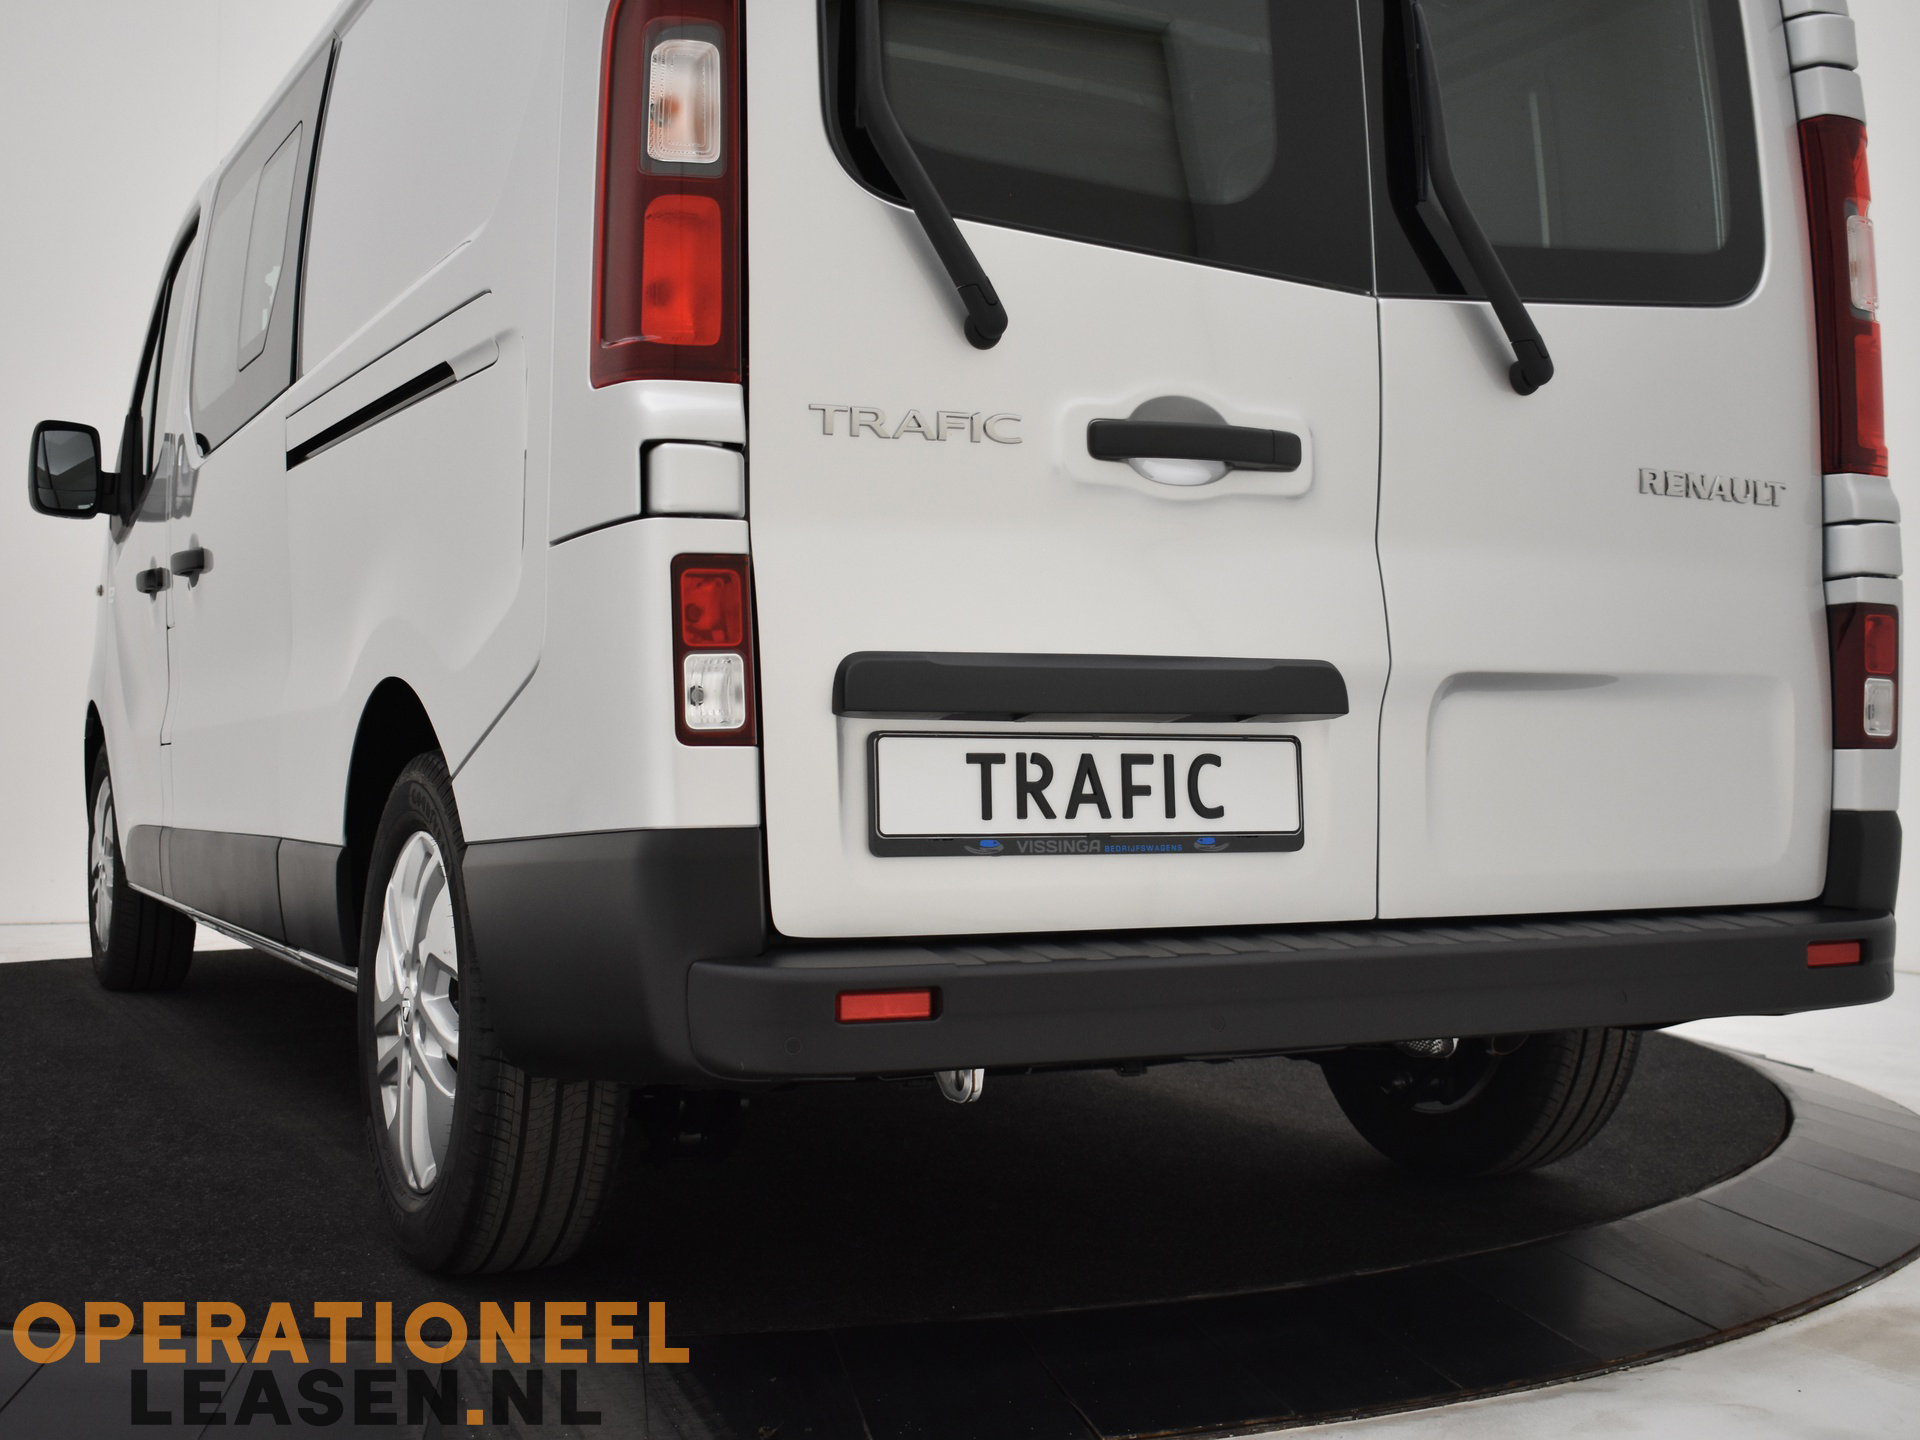 Operational lease Renault master traffic-28